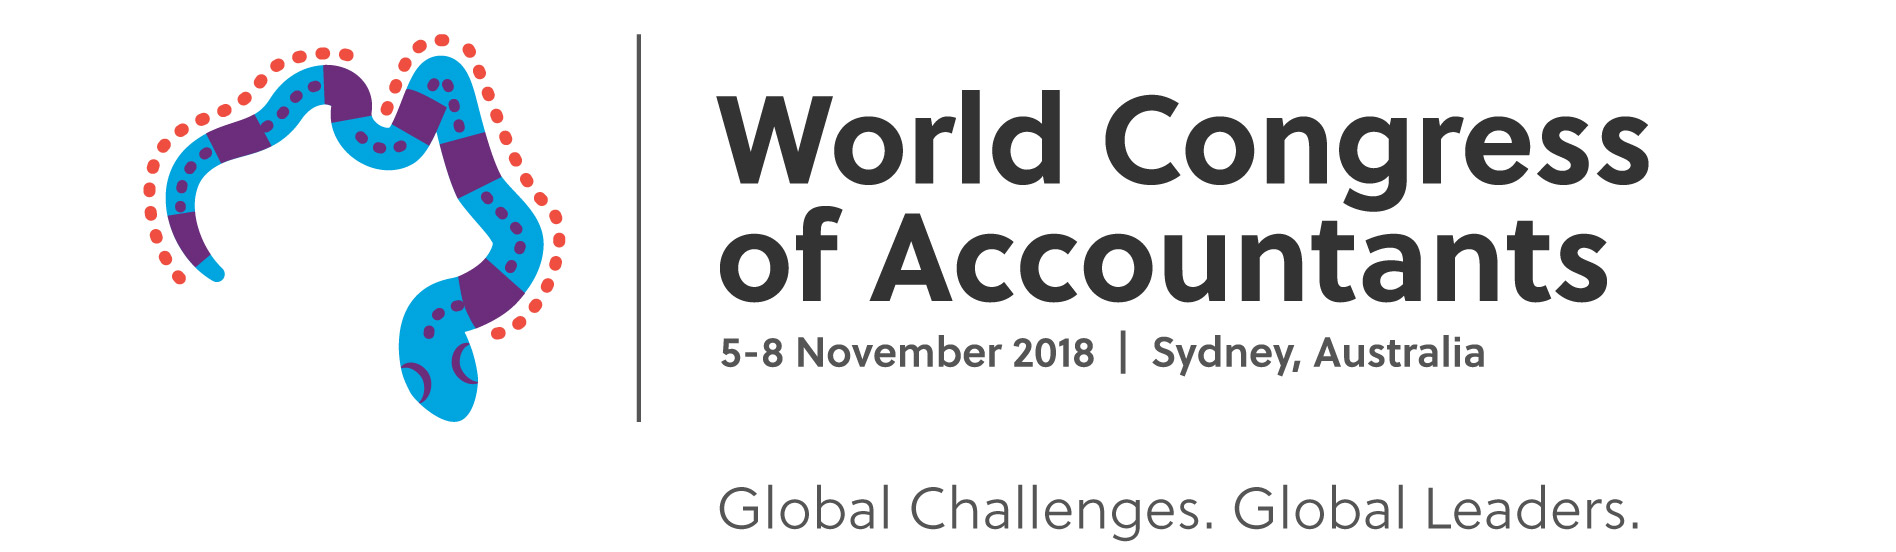 World Congress of Accountants logo